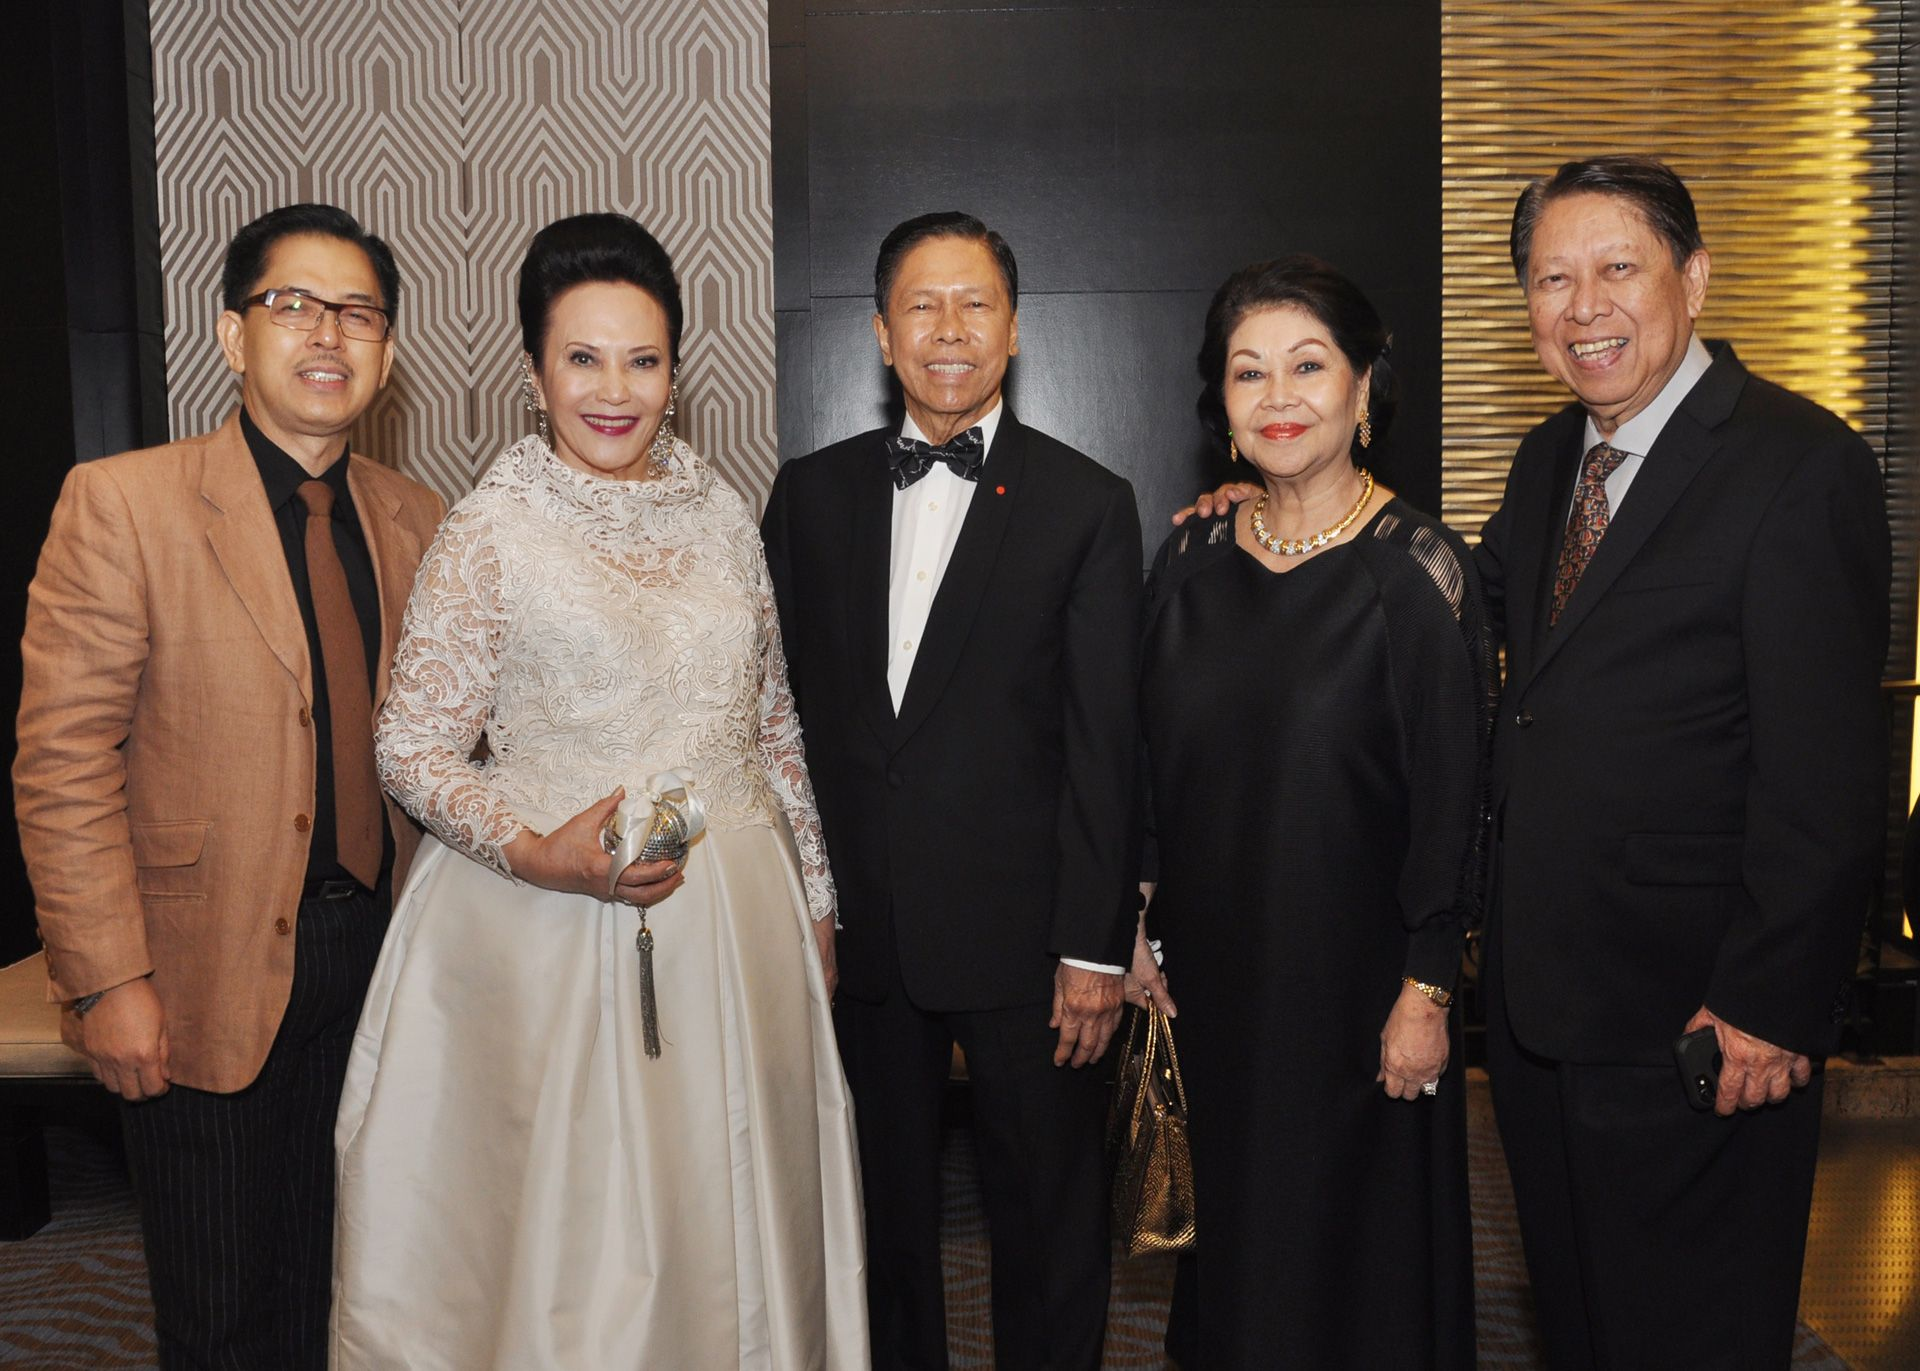 Edwin Medalla, Consuls Mellie and Louie Ablaza, with Mimi and Reuben Valerio